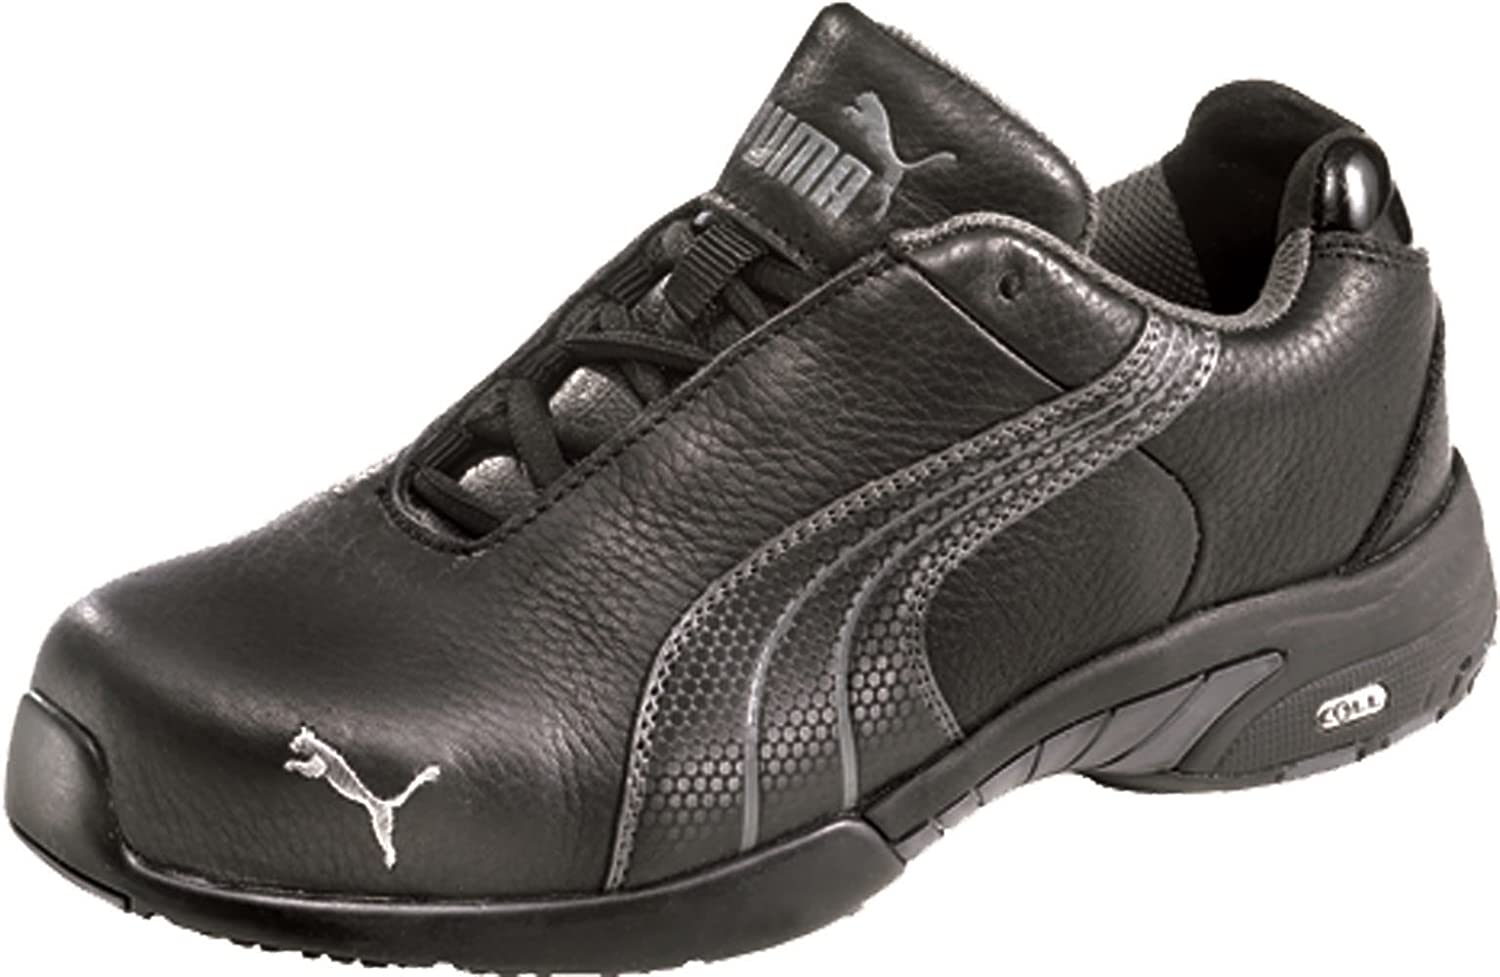 PUMA 642850-202-36 Ladies Safety Shoes